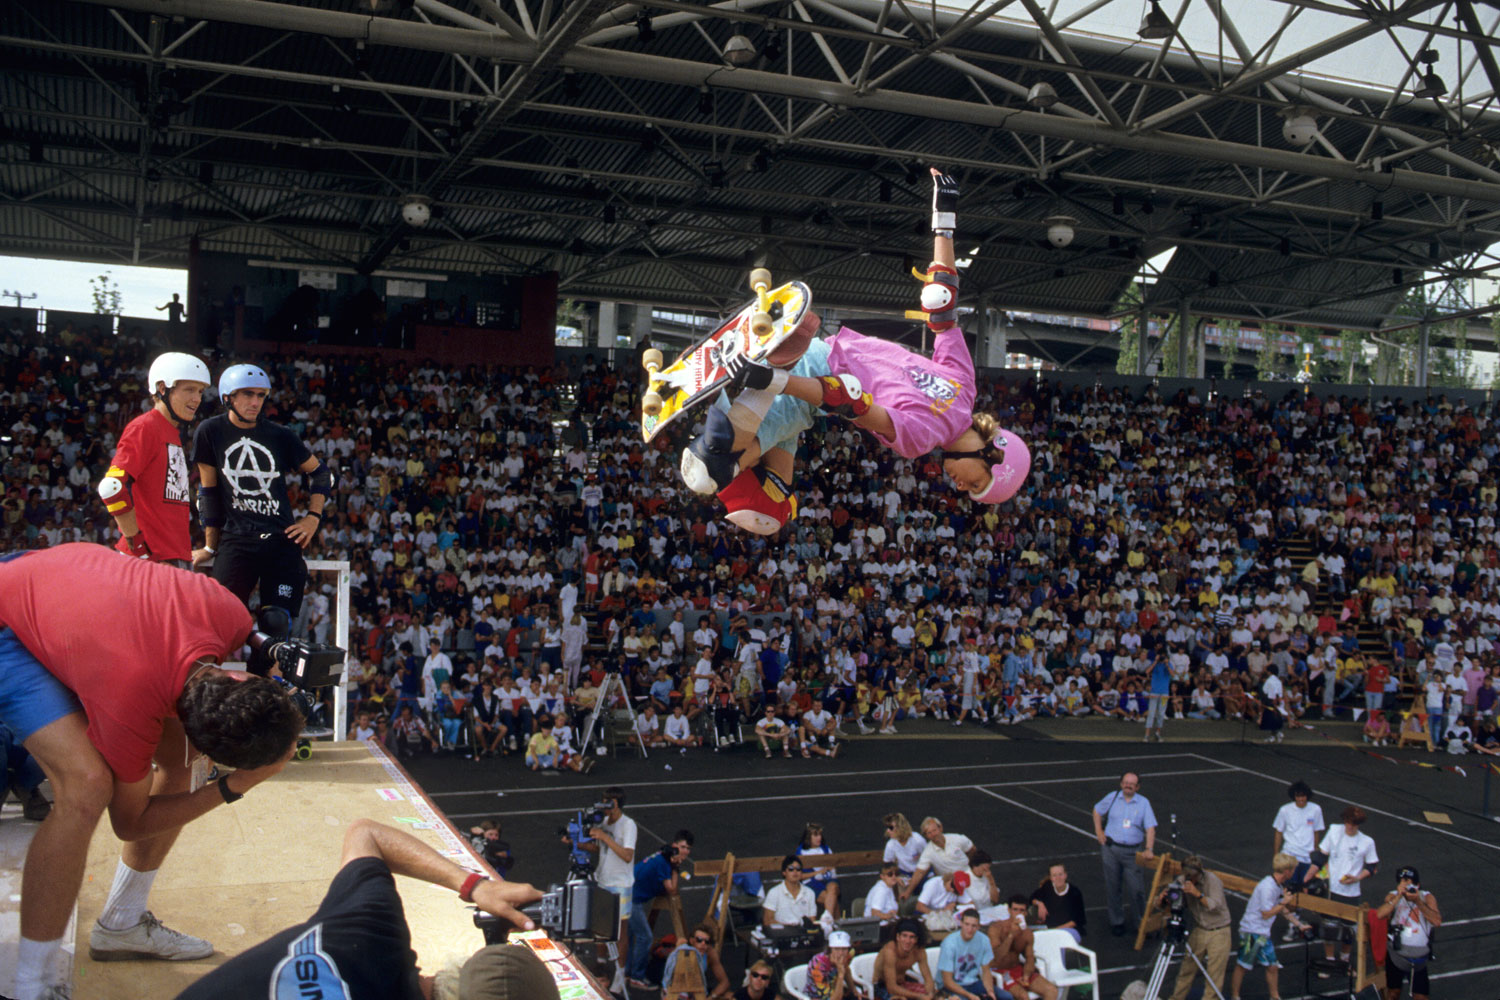 Just as his stardom began to grow, onlookers stood in awe of Hawk at the Skateboarding World Championships in 1986.